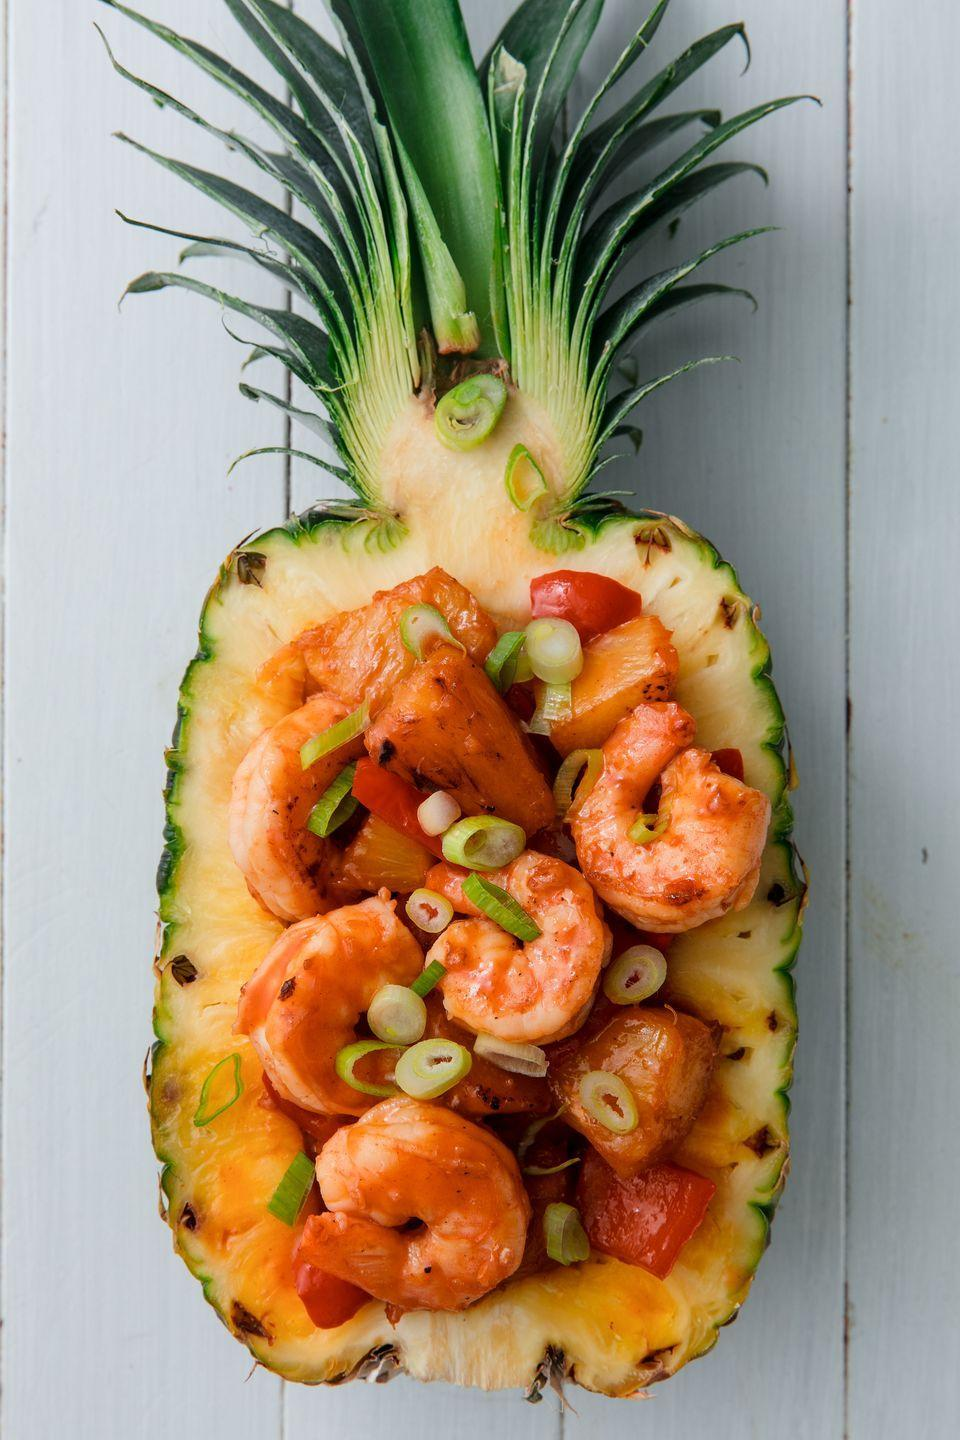 """<p>Pineapple boat optional, but recommended. </p><p>Get the recipe from <a href=""""https://www.delish.com/cooking/recipe-ideas/a22024504/best-pineapple-shrimp-recipe/"""" rel=""""nofollow noopener"""" target=""""_blank"""" data-ylk=""""slk:Delish."""" class=""""link rapid-noclick-resp"""">Delish. </a></p>"""